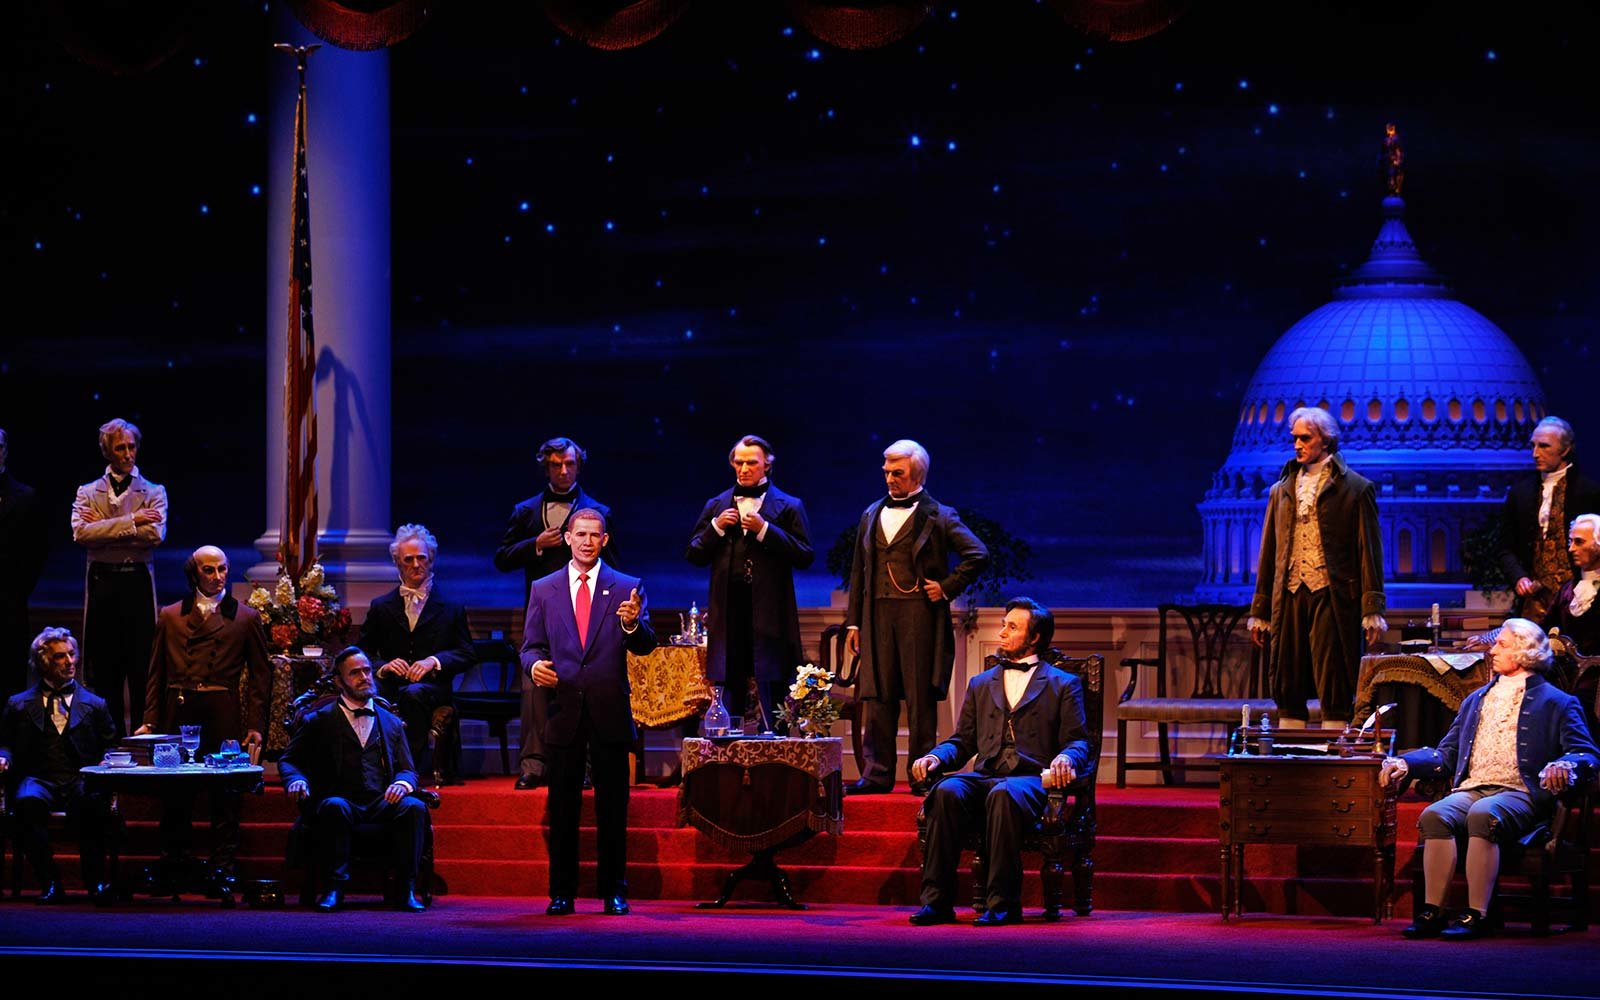 46. The Hall of Presidents